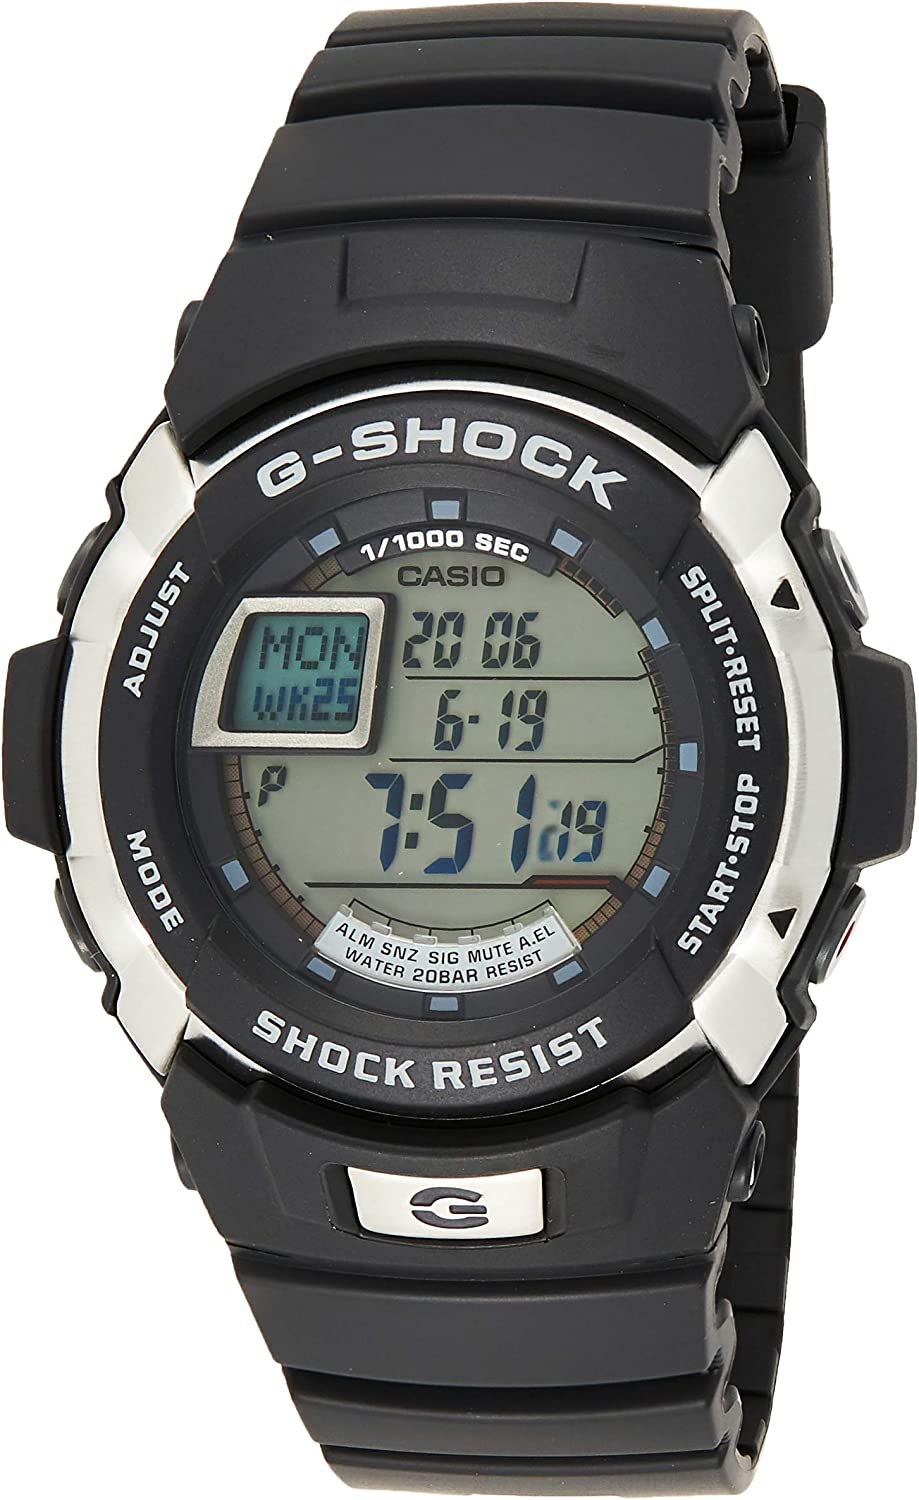 Casio G-SHOCK Reloj Digital, 20 BAR, Negro, para Hombre, G-7700-1ER